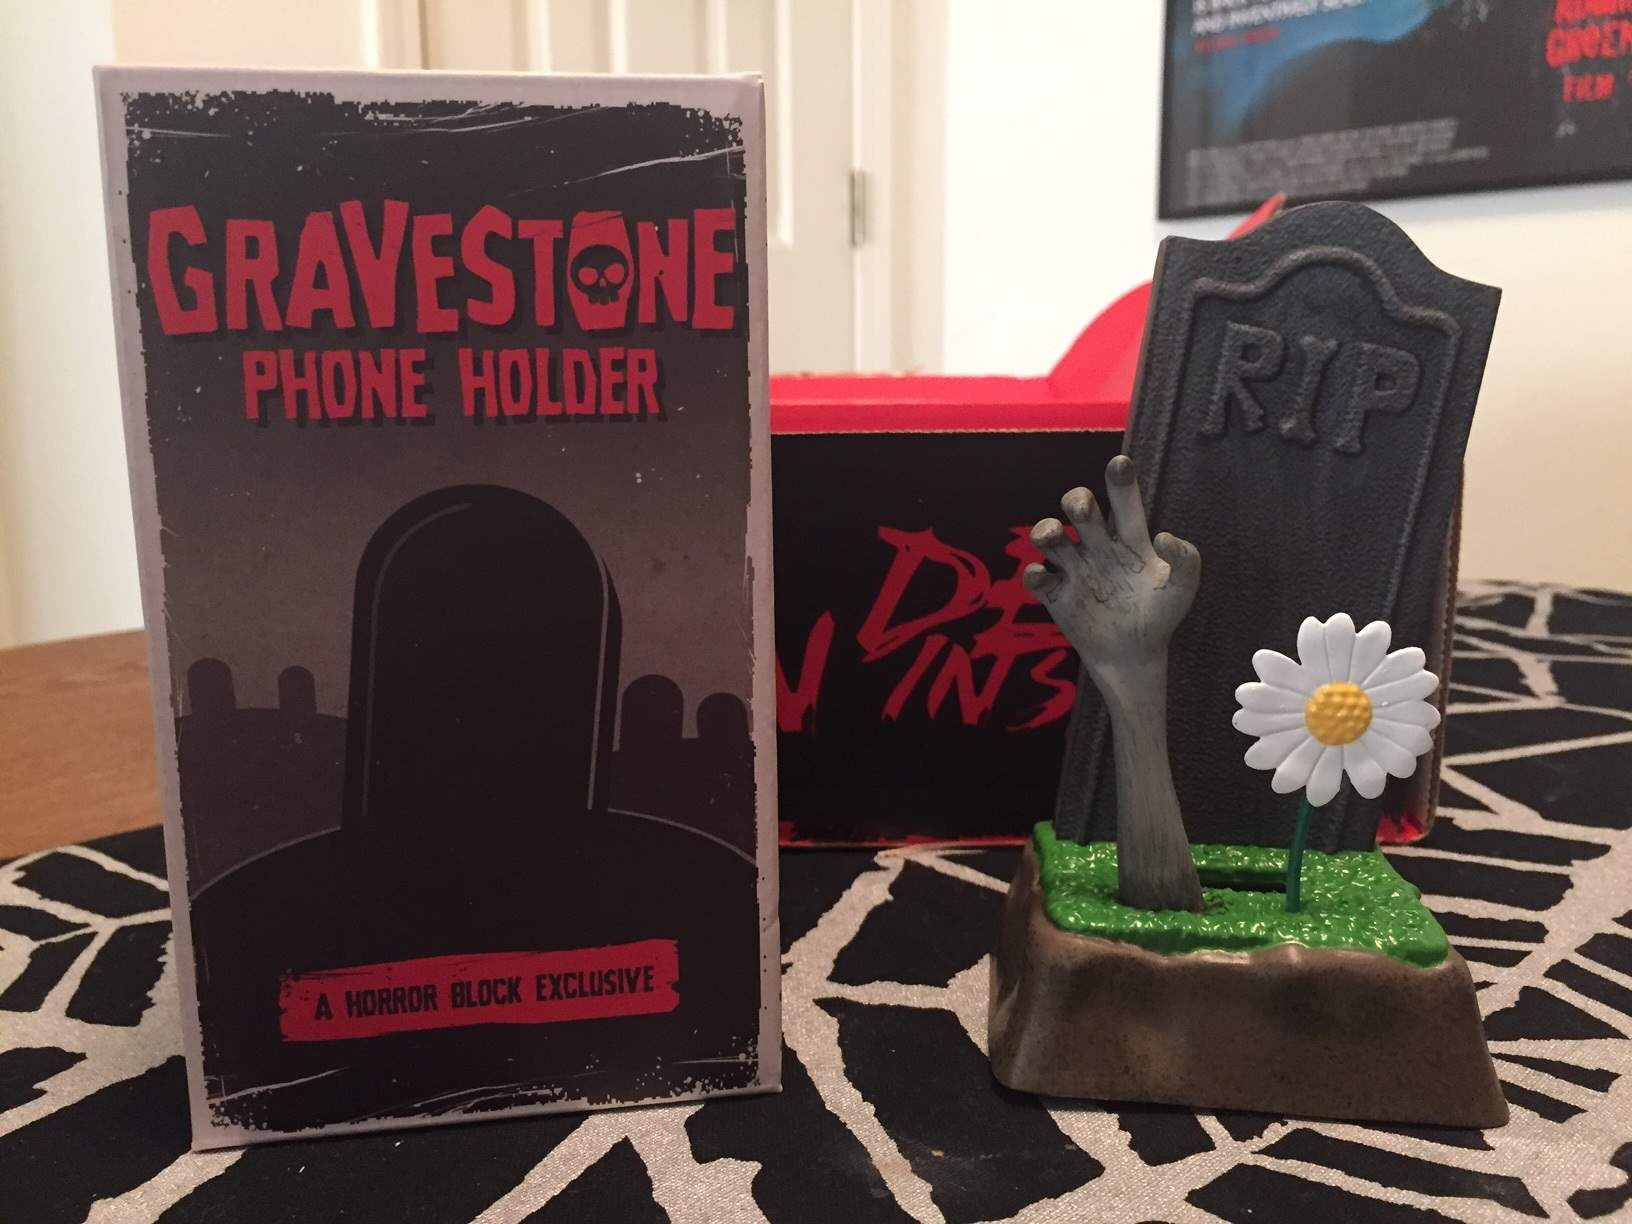 Gravestone cell phone holder